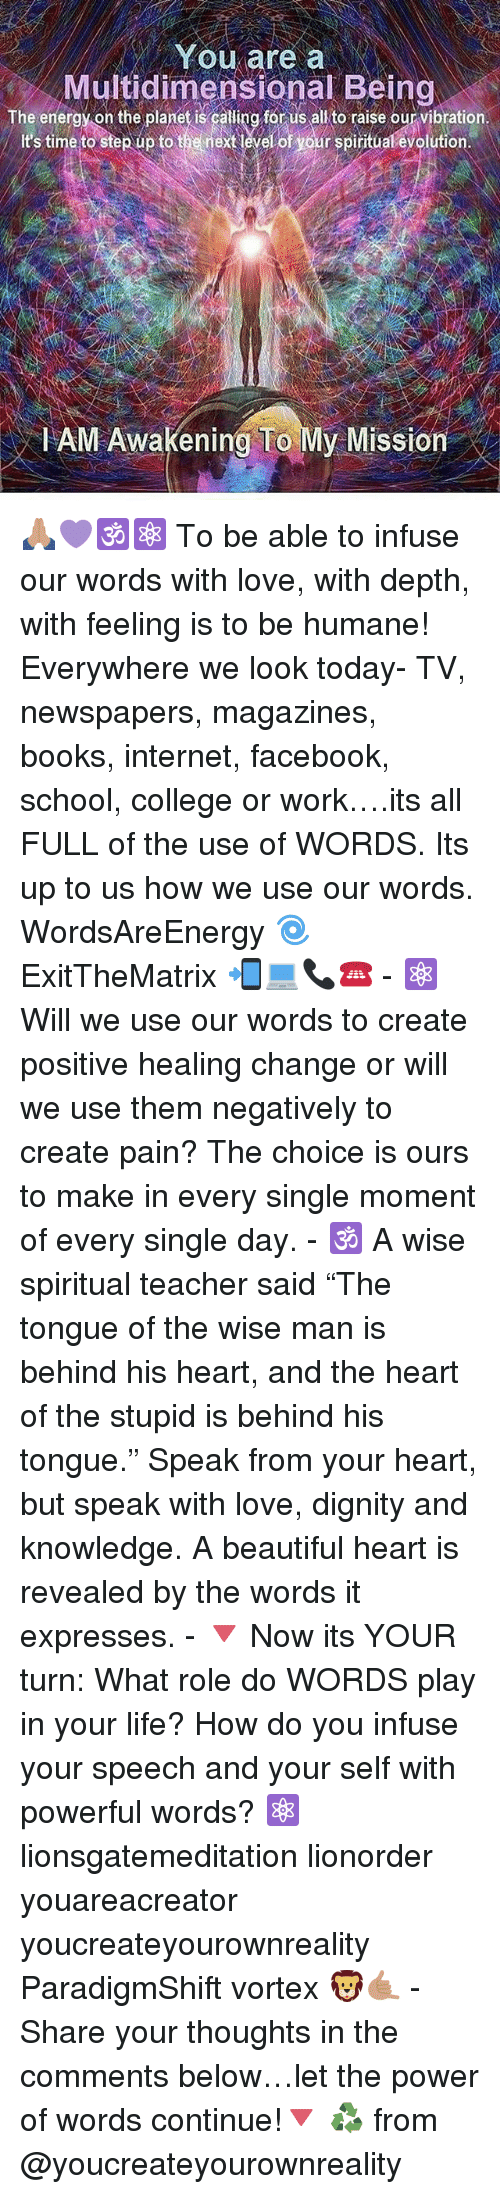 """Beautiful, Books, and College: You are a  Multidimensional Being  The energy on the planet is calling for us all to raise our vibration.  t'stime to step up to the rext levelot your spirituat eyolution  lAM Awakening To My Mission 🙏🏽💜🕉⚛️ To be able to infuse our words with love, with depth, with feeling is to be humane! Everywhere we look today- TV, newspapers, magazines, books, internet, facebook, school, college or work….its all FULL of the use of WORDS. Its up to us how we use our words. WordsAreEnergy 🌀 ExitTheMatrix 📲💻📞☎️ - ⚛️ Will we use our words to create positive healing change or will we use them negatively to create pain? The choice is ours to make in every single moment of every single day. - 🕉 A wise spiritual teacher said """"The tongue of the wise man is behind his heart, and the heart of the stupid is behind his tongue."""" Speak from your heart, but speak with love, dignity and knowledge. A beautiful heart is revealed by the words it expresses. - 🔻 Now its YOUR turn: What role do WORDS play in your life? How do you infuse your speech and your self with powerful words? ⚛️ lionsgatemeditation lionorder youareacreator youcreateyourownreality ParadigmShift vortex 🦁🤙🏽 - Share your thoughts in the comments below…let the power of words continue!🔻 ♻ from @youcreateyourownreality"""